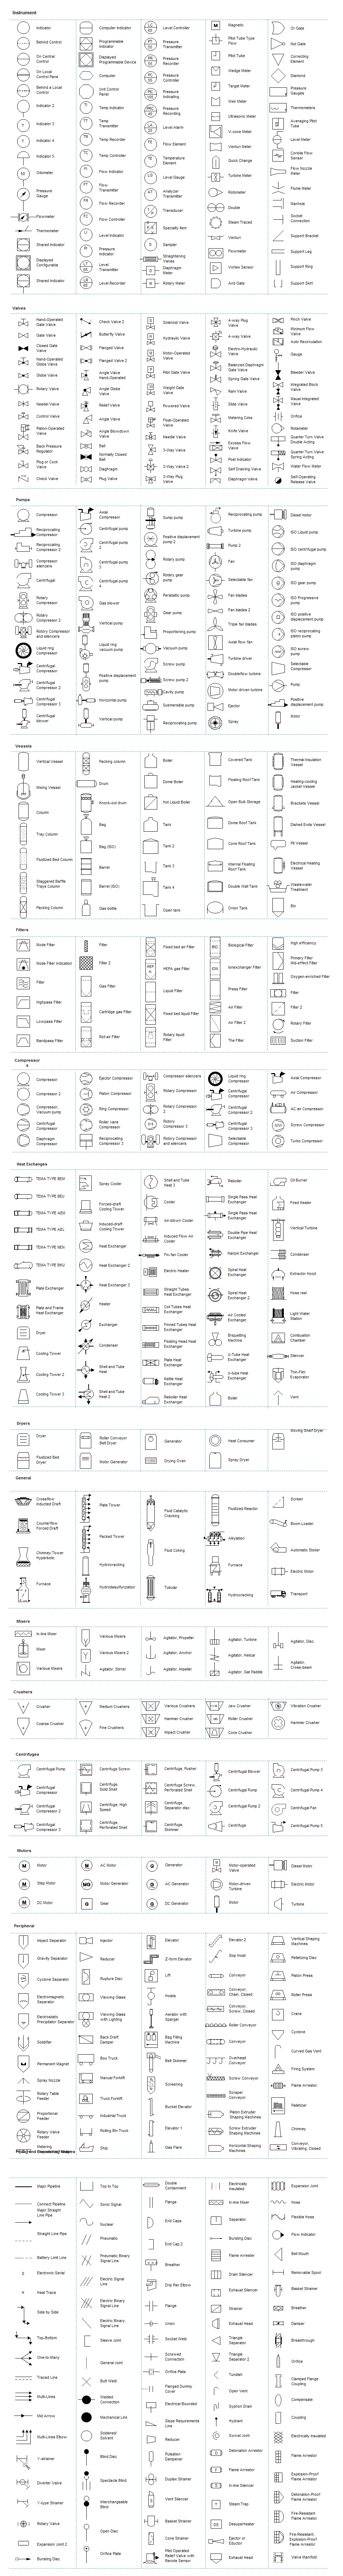 Pid Symbol Legend Engineering Diagram Pinterest Symbols Wiring Electrical Cheat Sheets Instruments